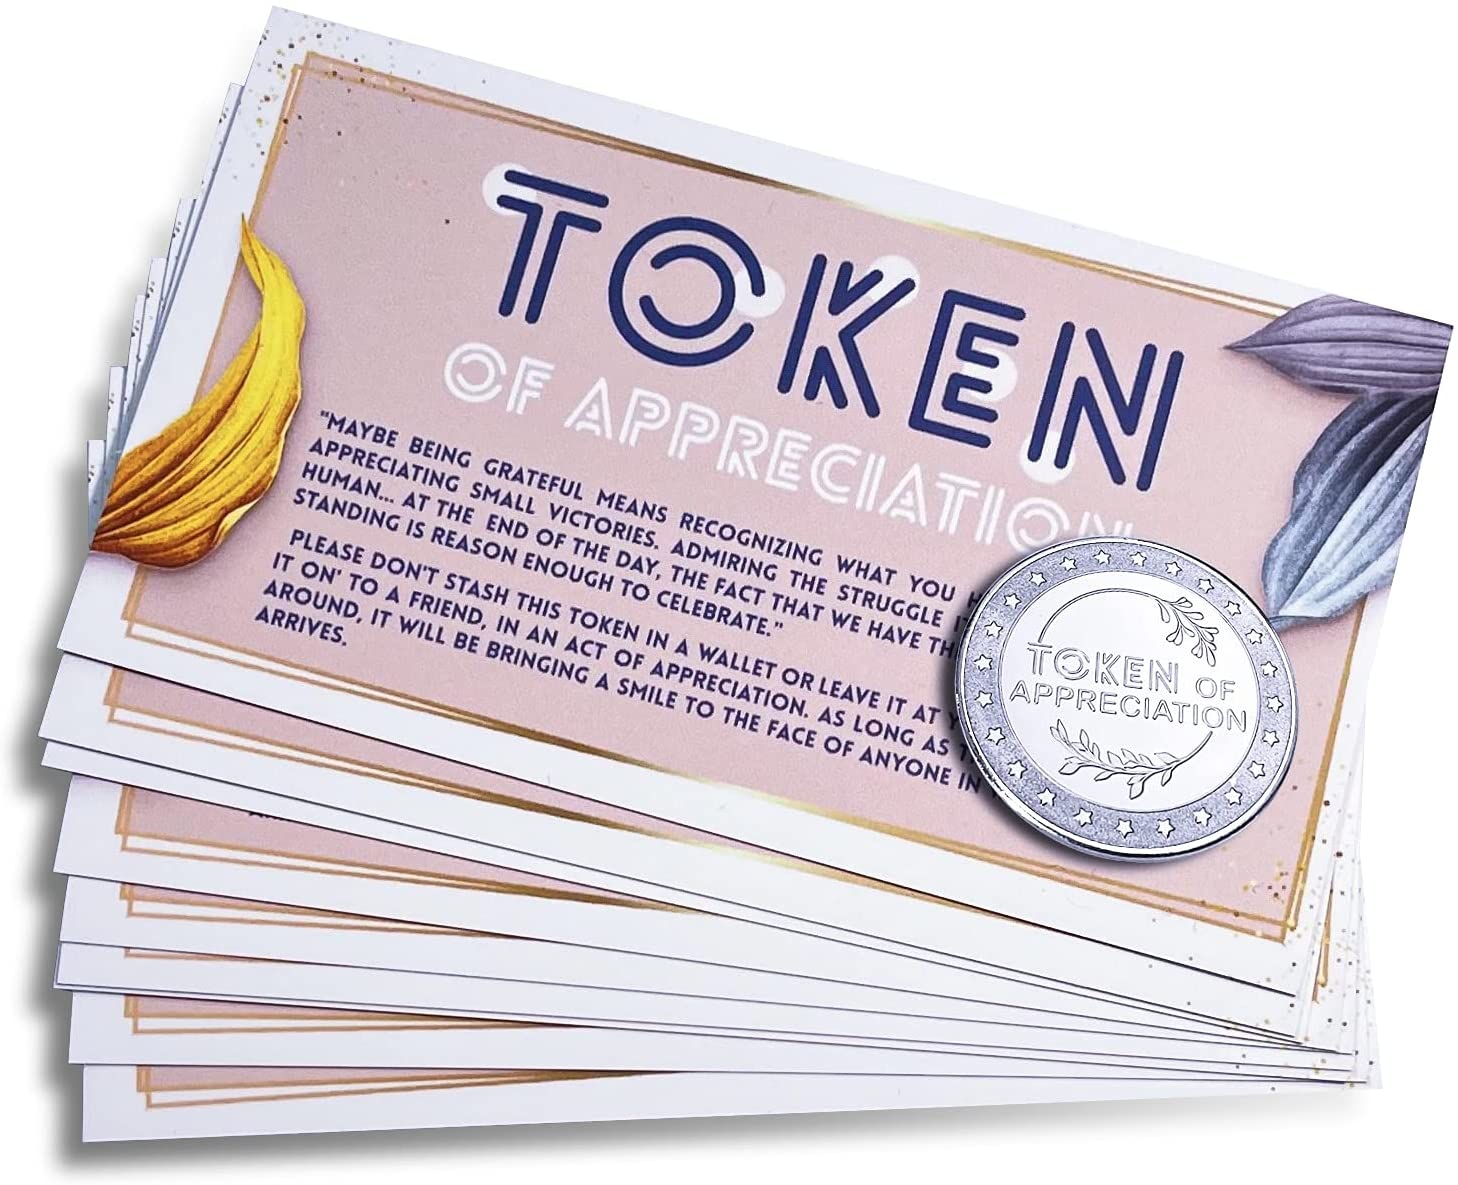 Tokens of Appreciation with Cards (Set of 10) - Recognition Gift - for Employees, Coworkers, Teachers, Volunteers